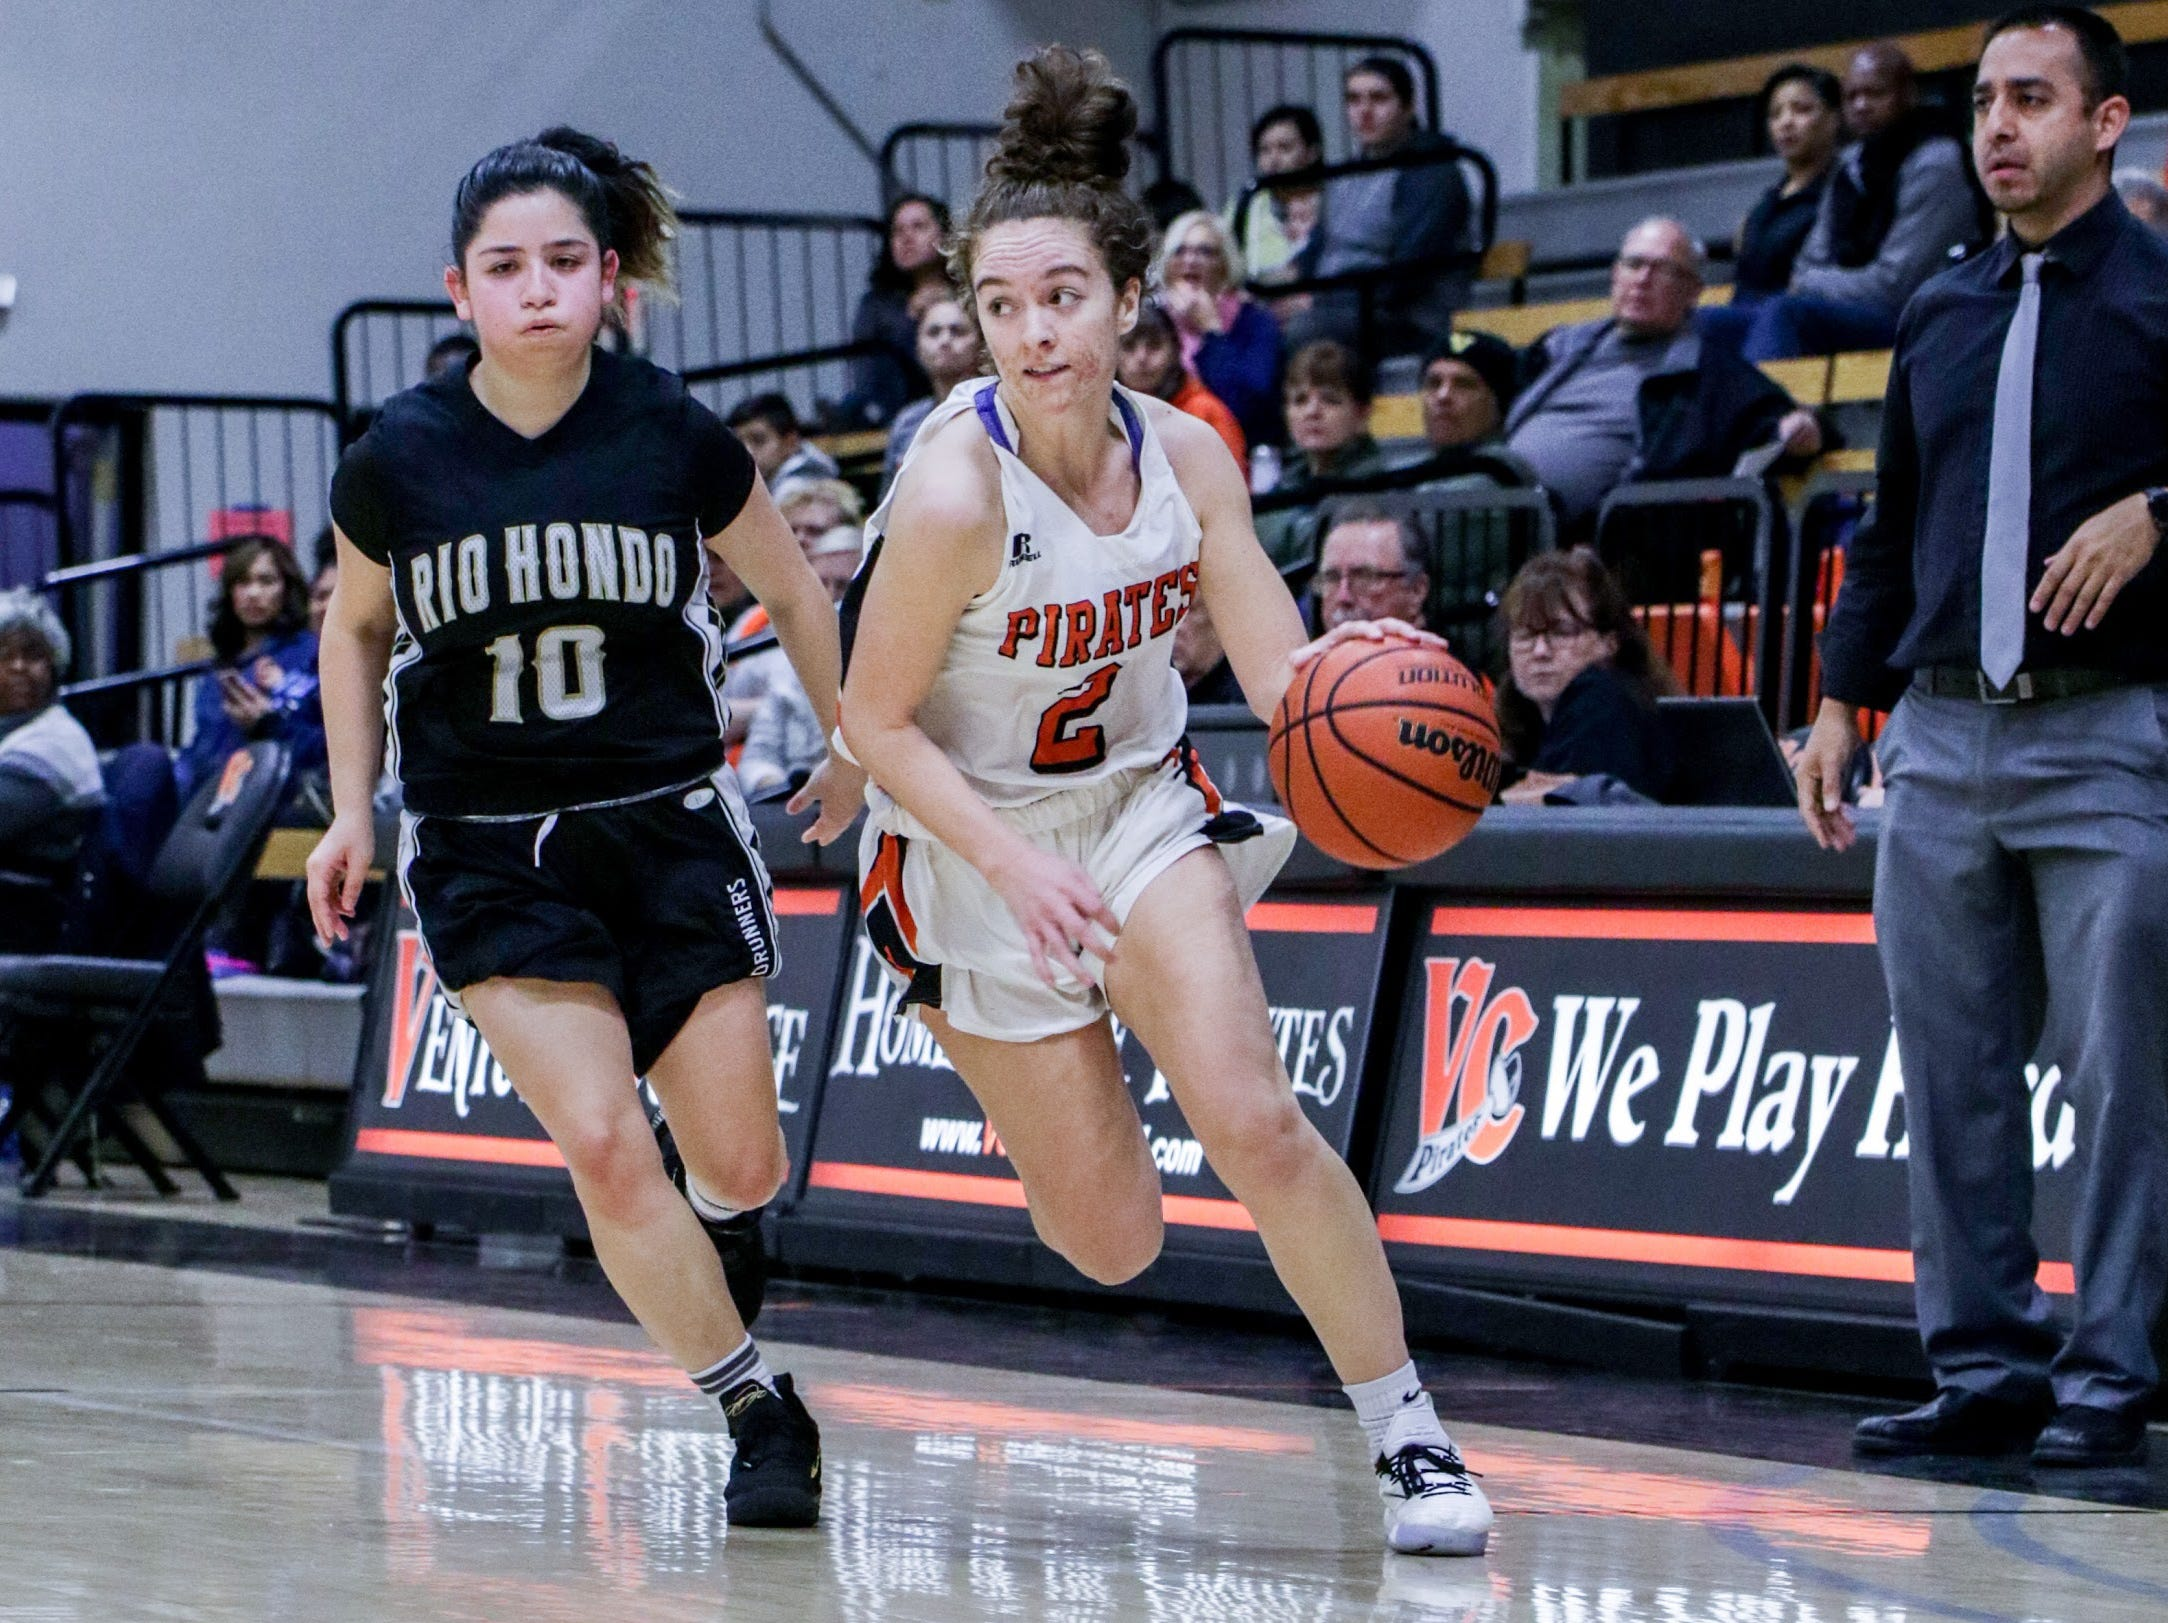 Ventura College freshman Talia Taufaasau races up the floor on Friday night against Rio Hondo in the CCCAA SoCal regional semifinals at the VC Athletic Event Center. Ventura won, 60-49.